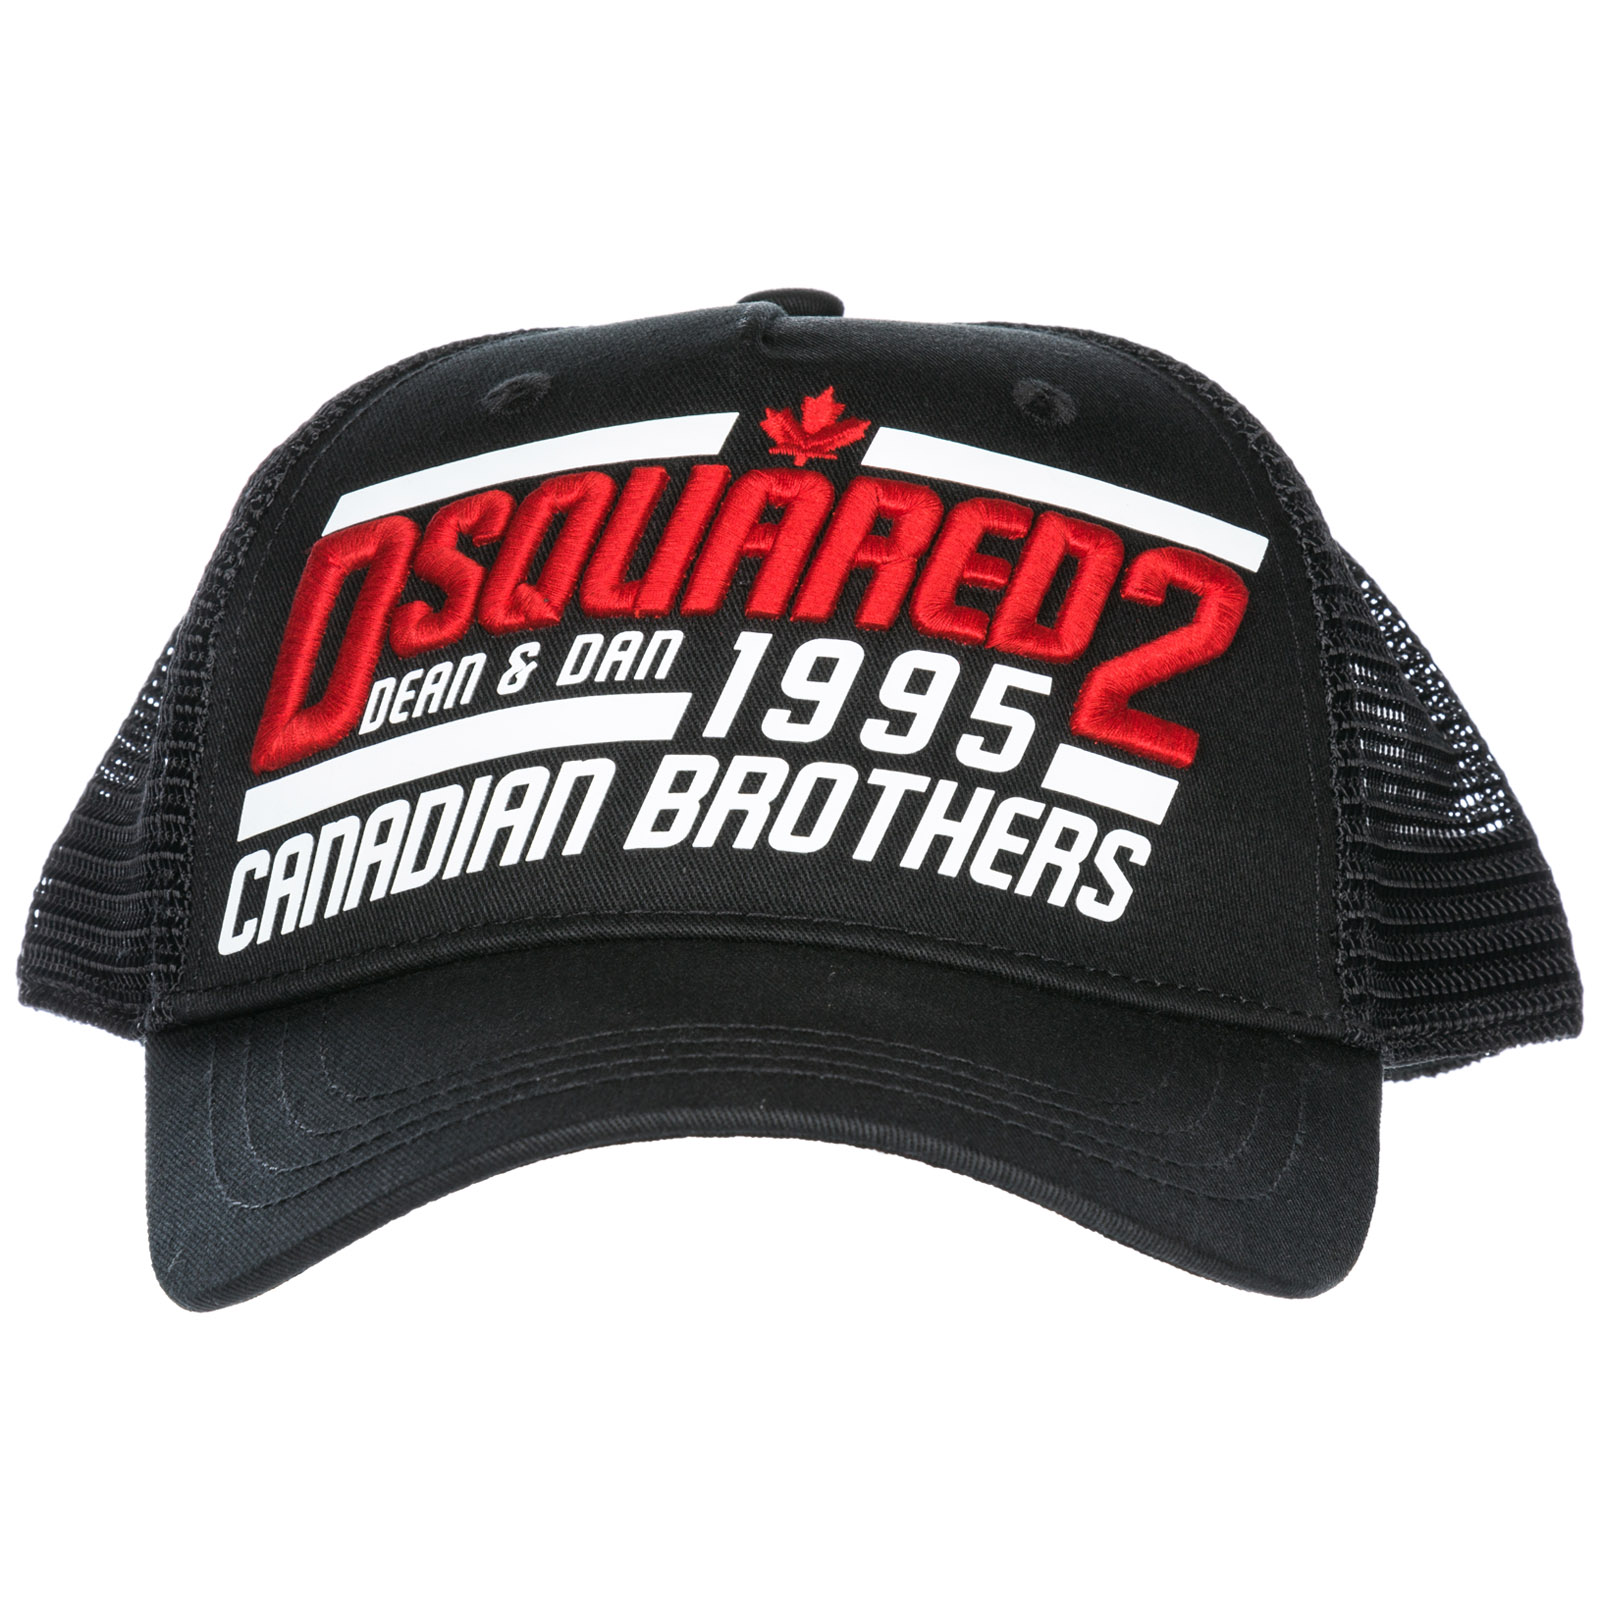 Cappello baseball Dsquared2 Canadian Brothers BCM0133135500012124 ... 1391cd82cdd9